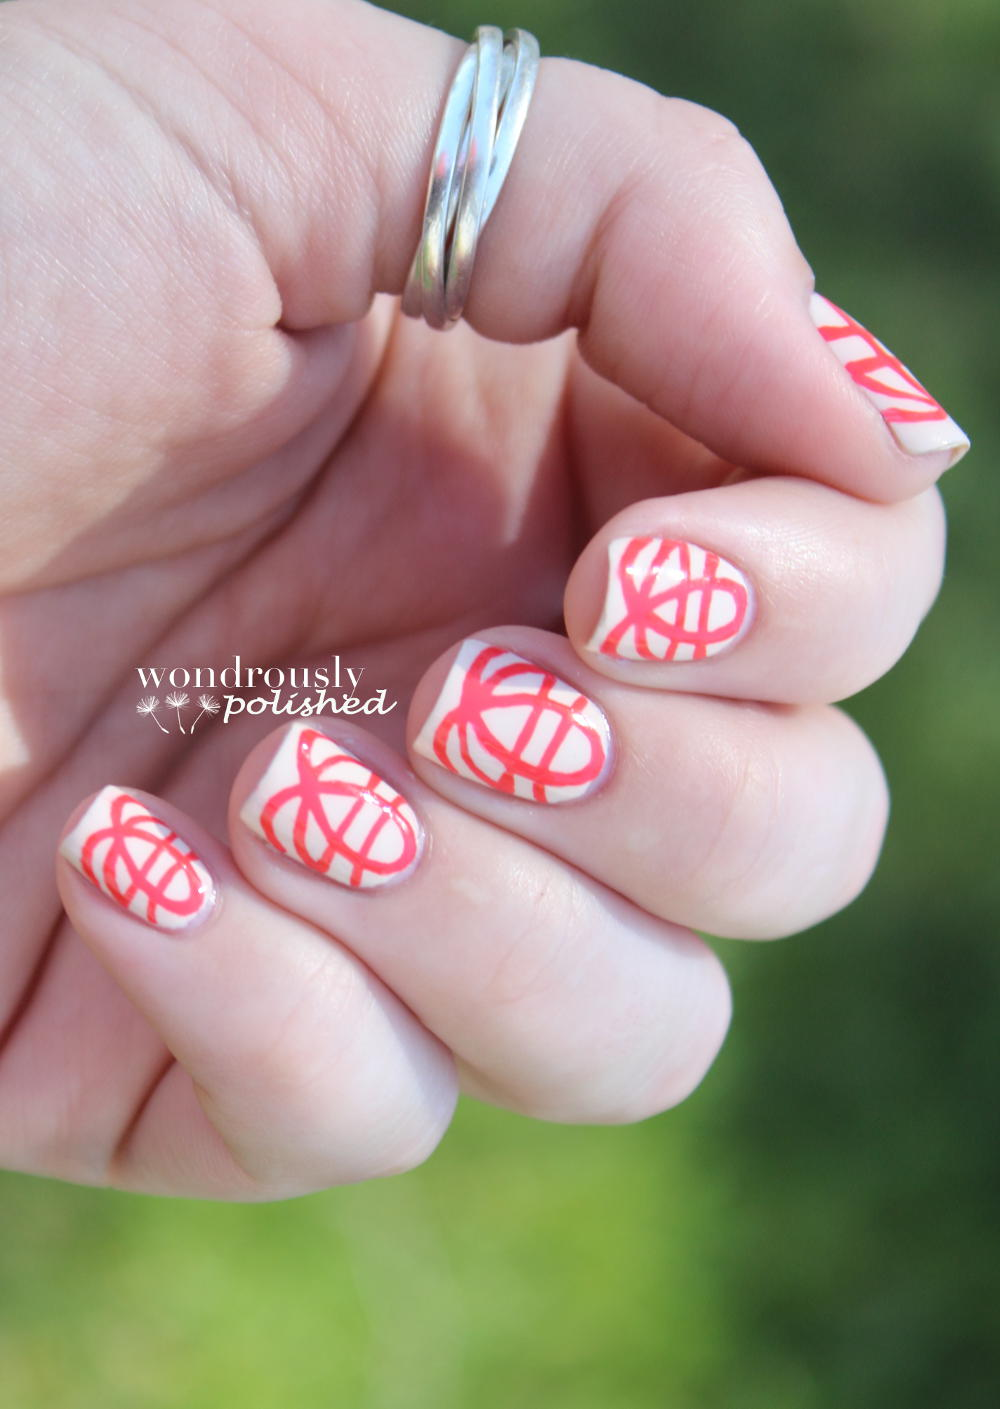 Wondrously Polished February Nail Art Challenge: Wondrously Polished: May Nail Art Challenge